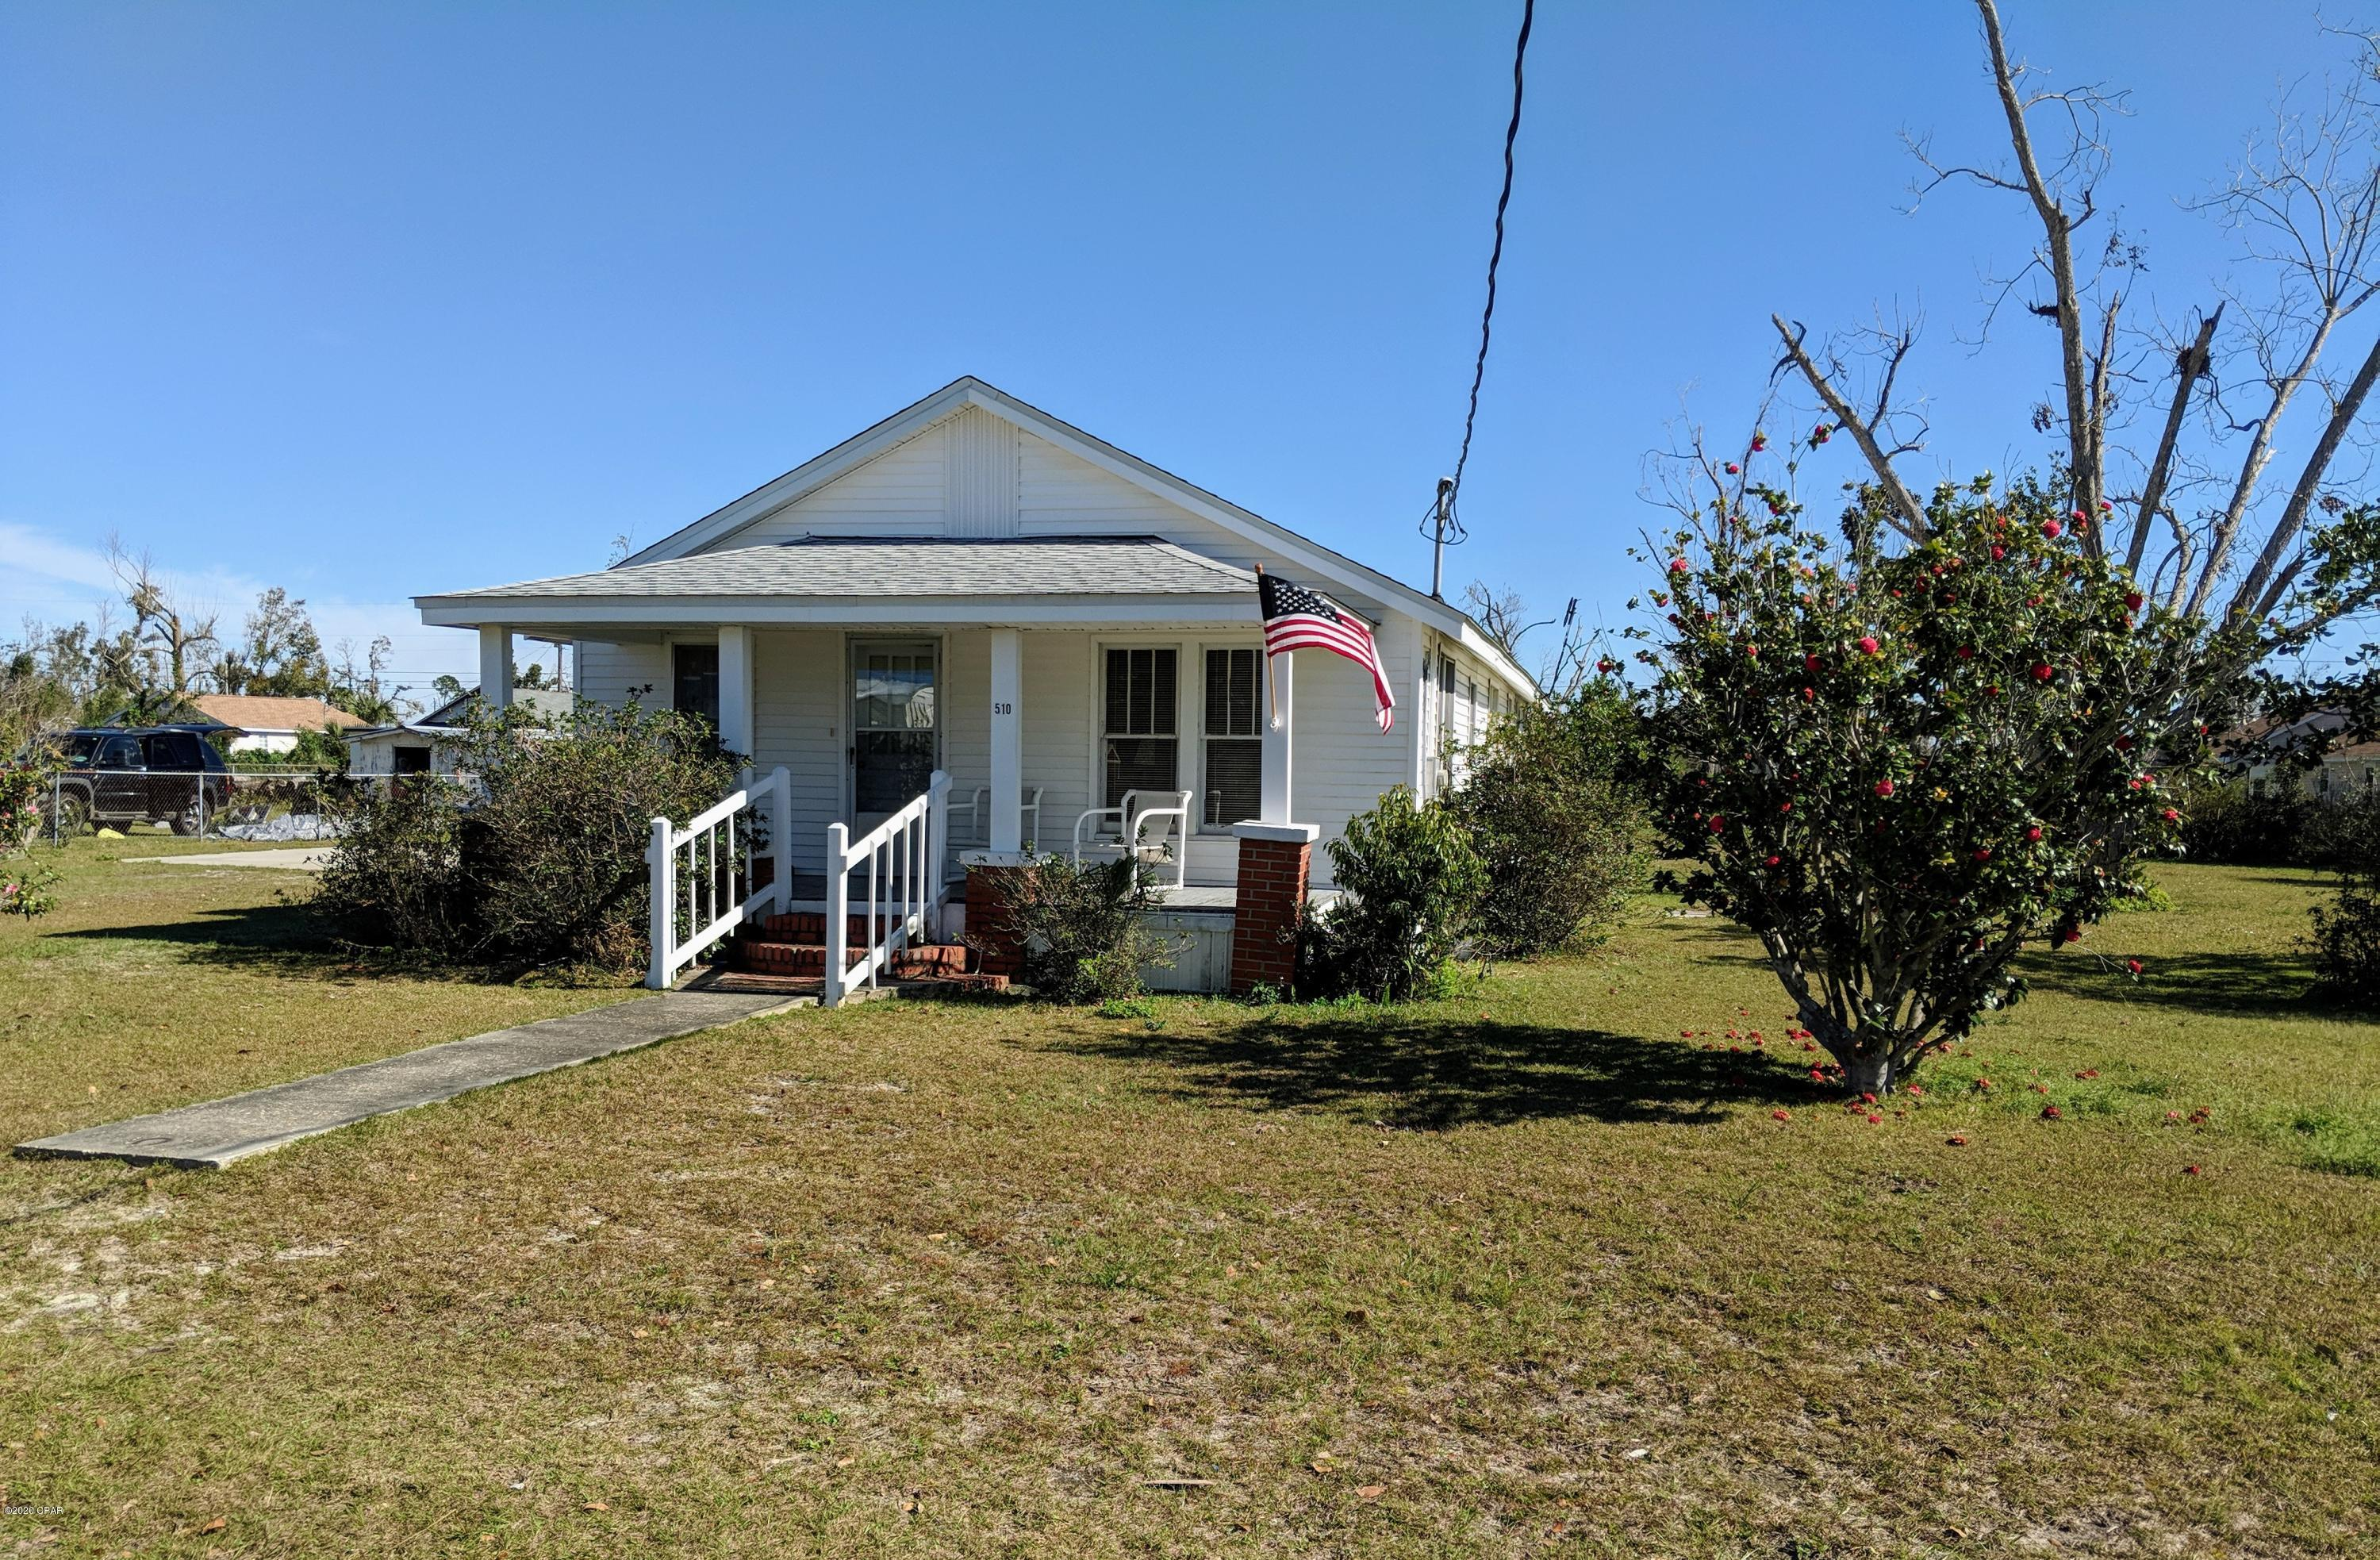 Photo of 510 James Avenue Panama City FL 32401